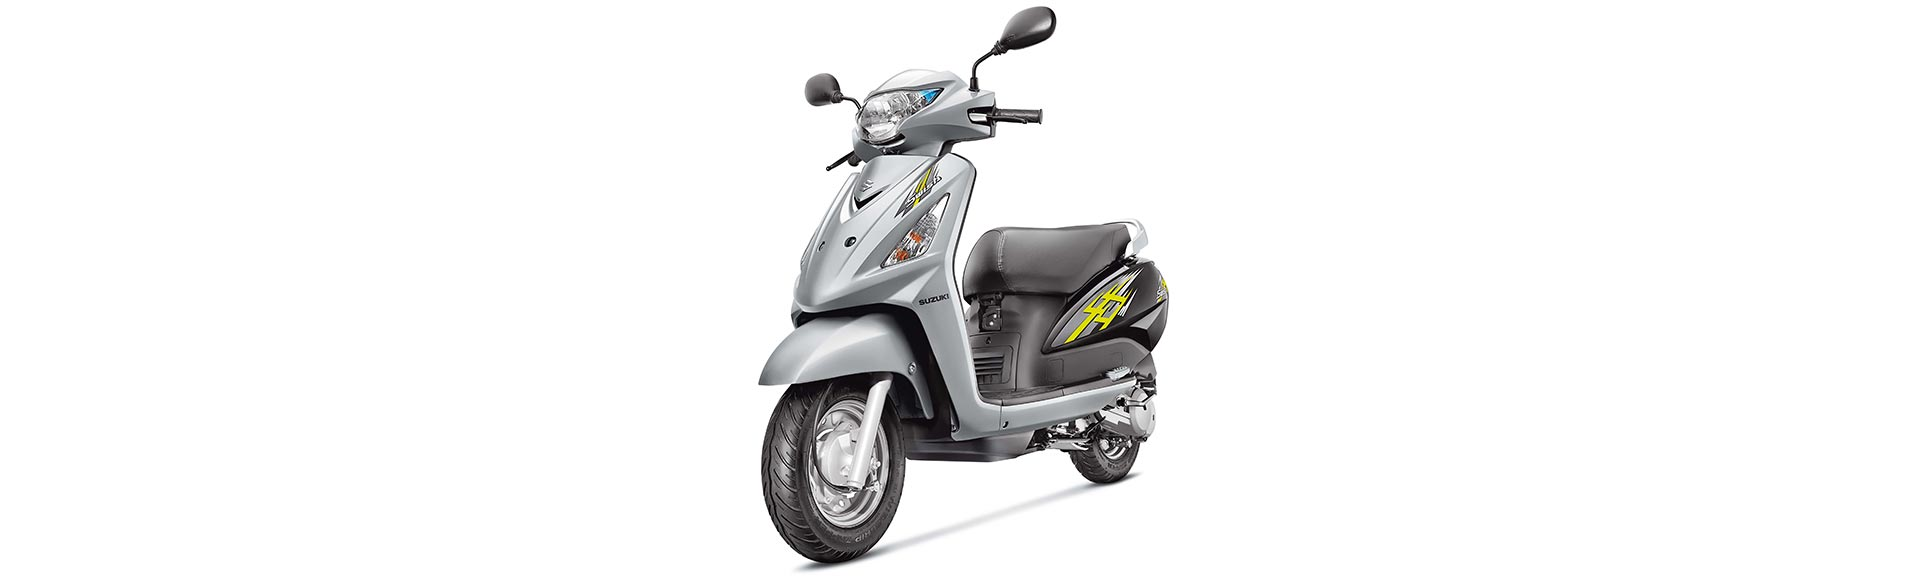 Rajavalsam Motors Best Suzuki Motorbike Dealers In Kerala